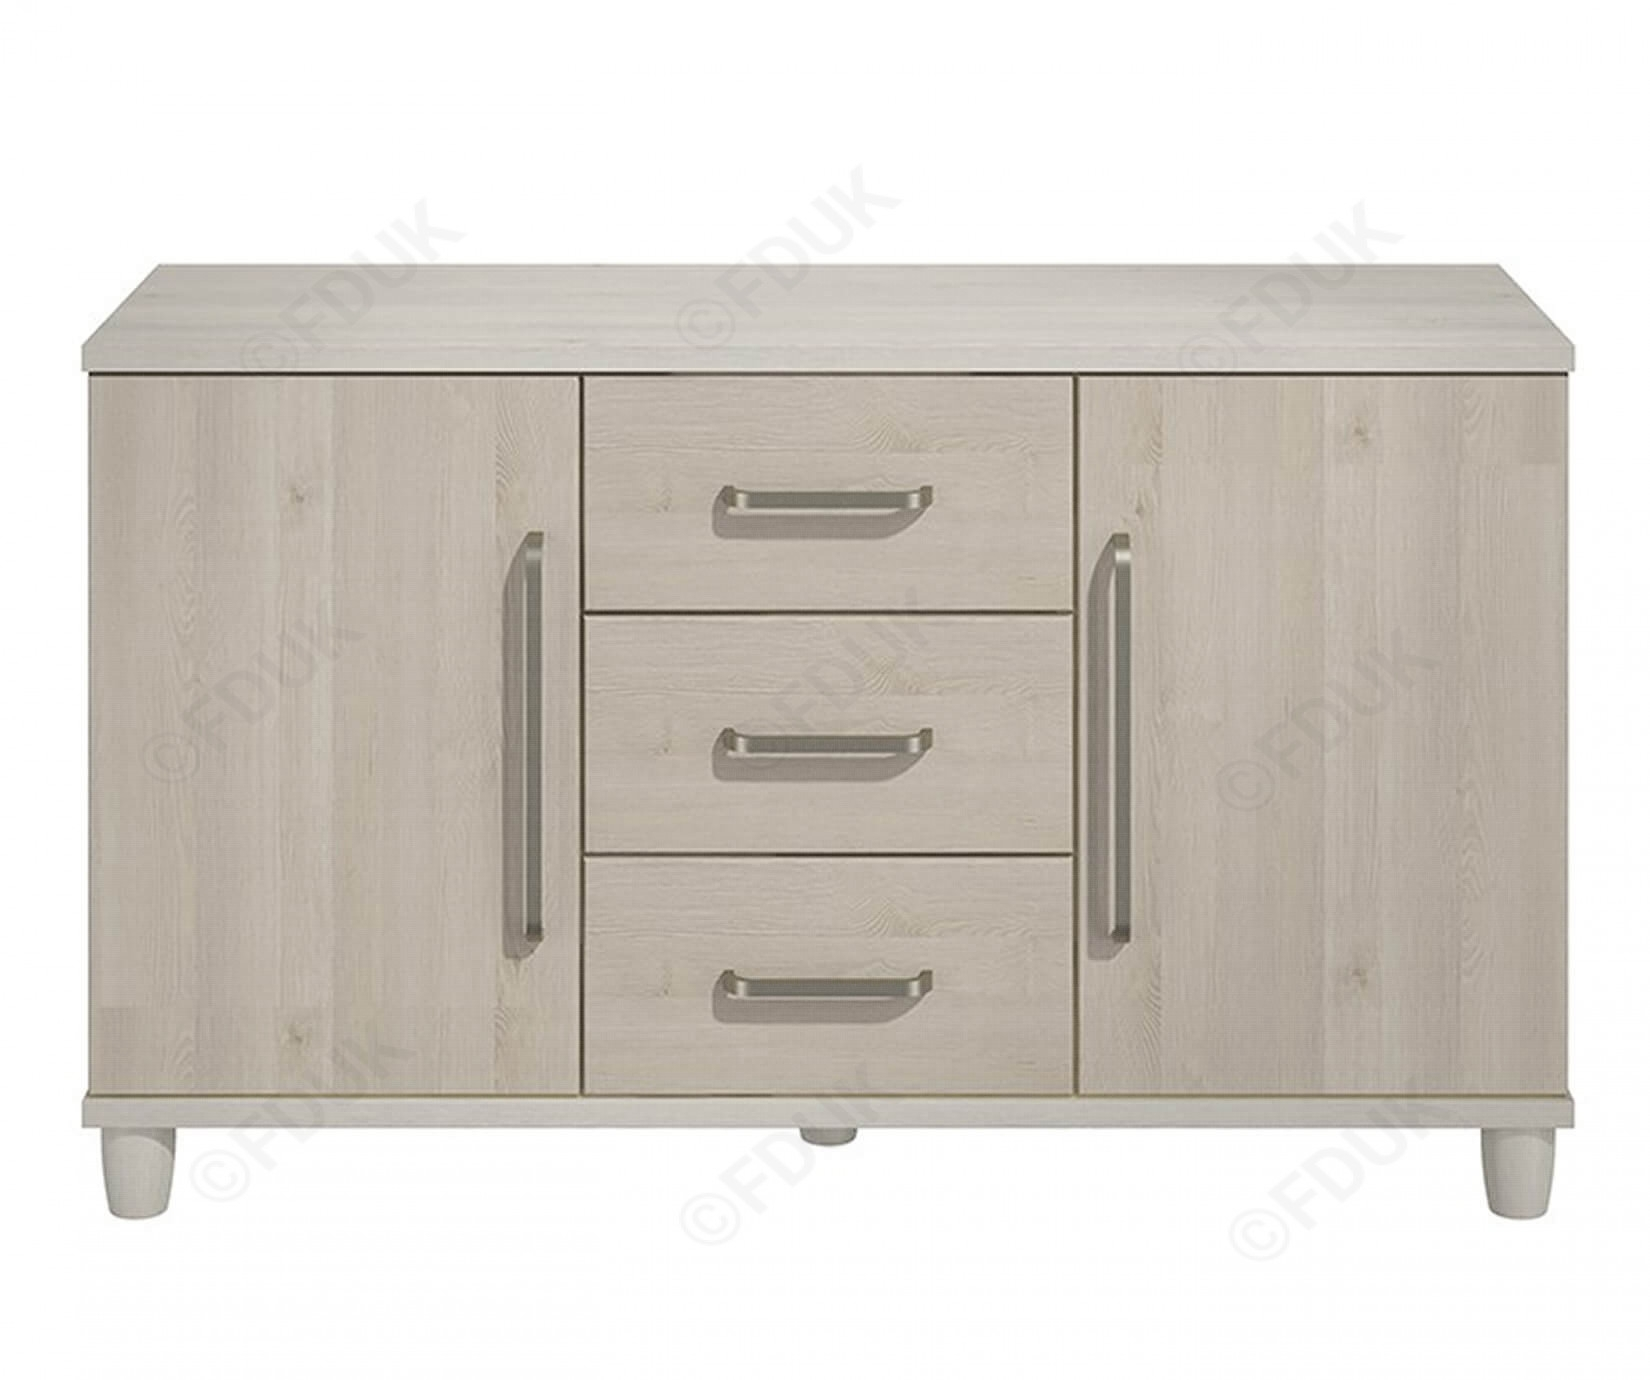 Kt | Moda Cashmere And Elm 2 Door 3 Drawer Sideboard Pertaining To Most Current 3 Drawer/2 Door Sideboards (#13 of 20)